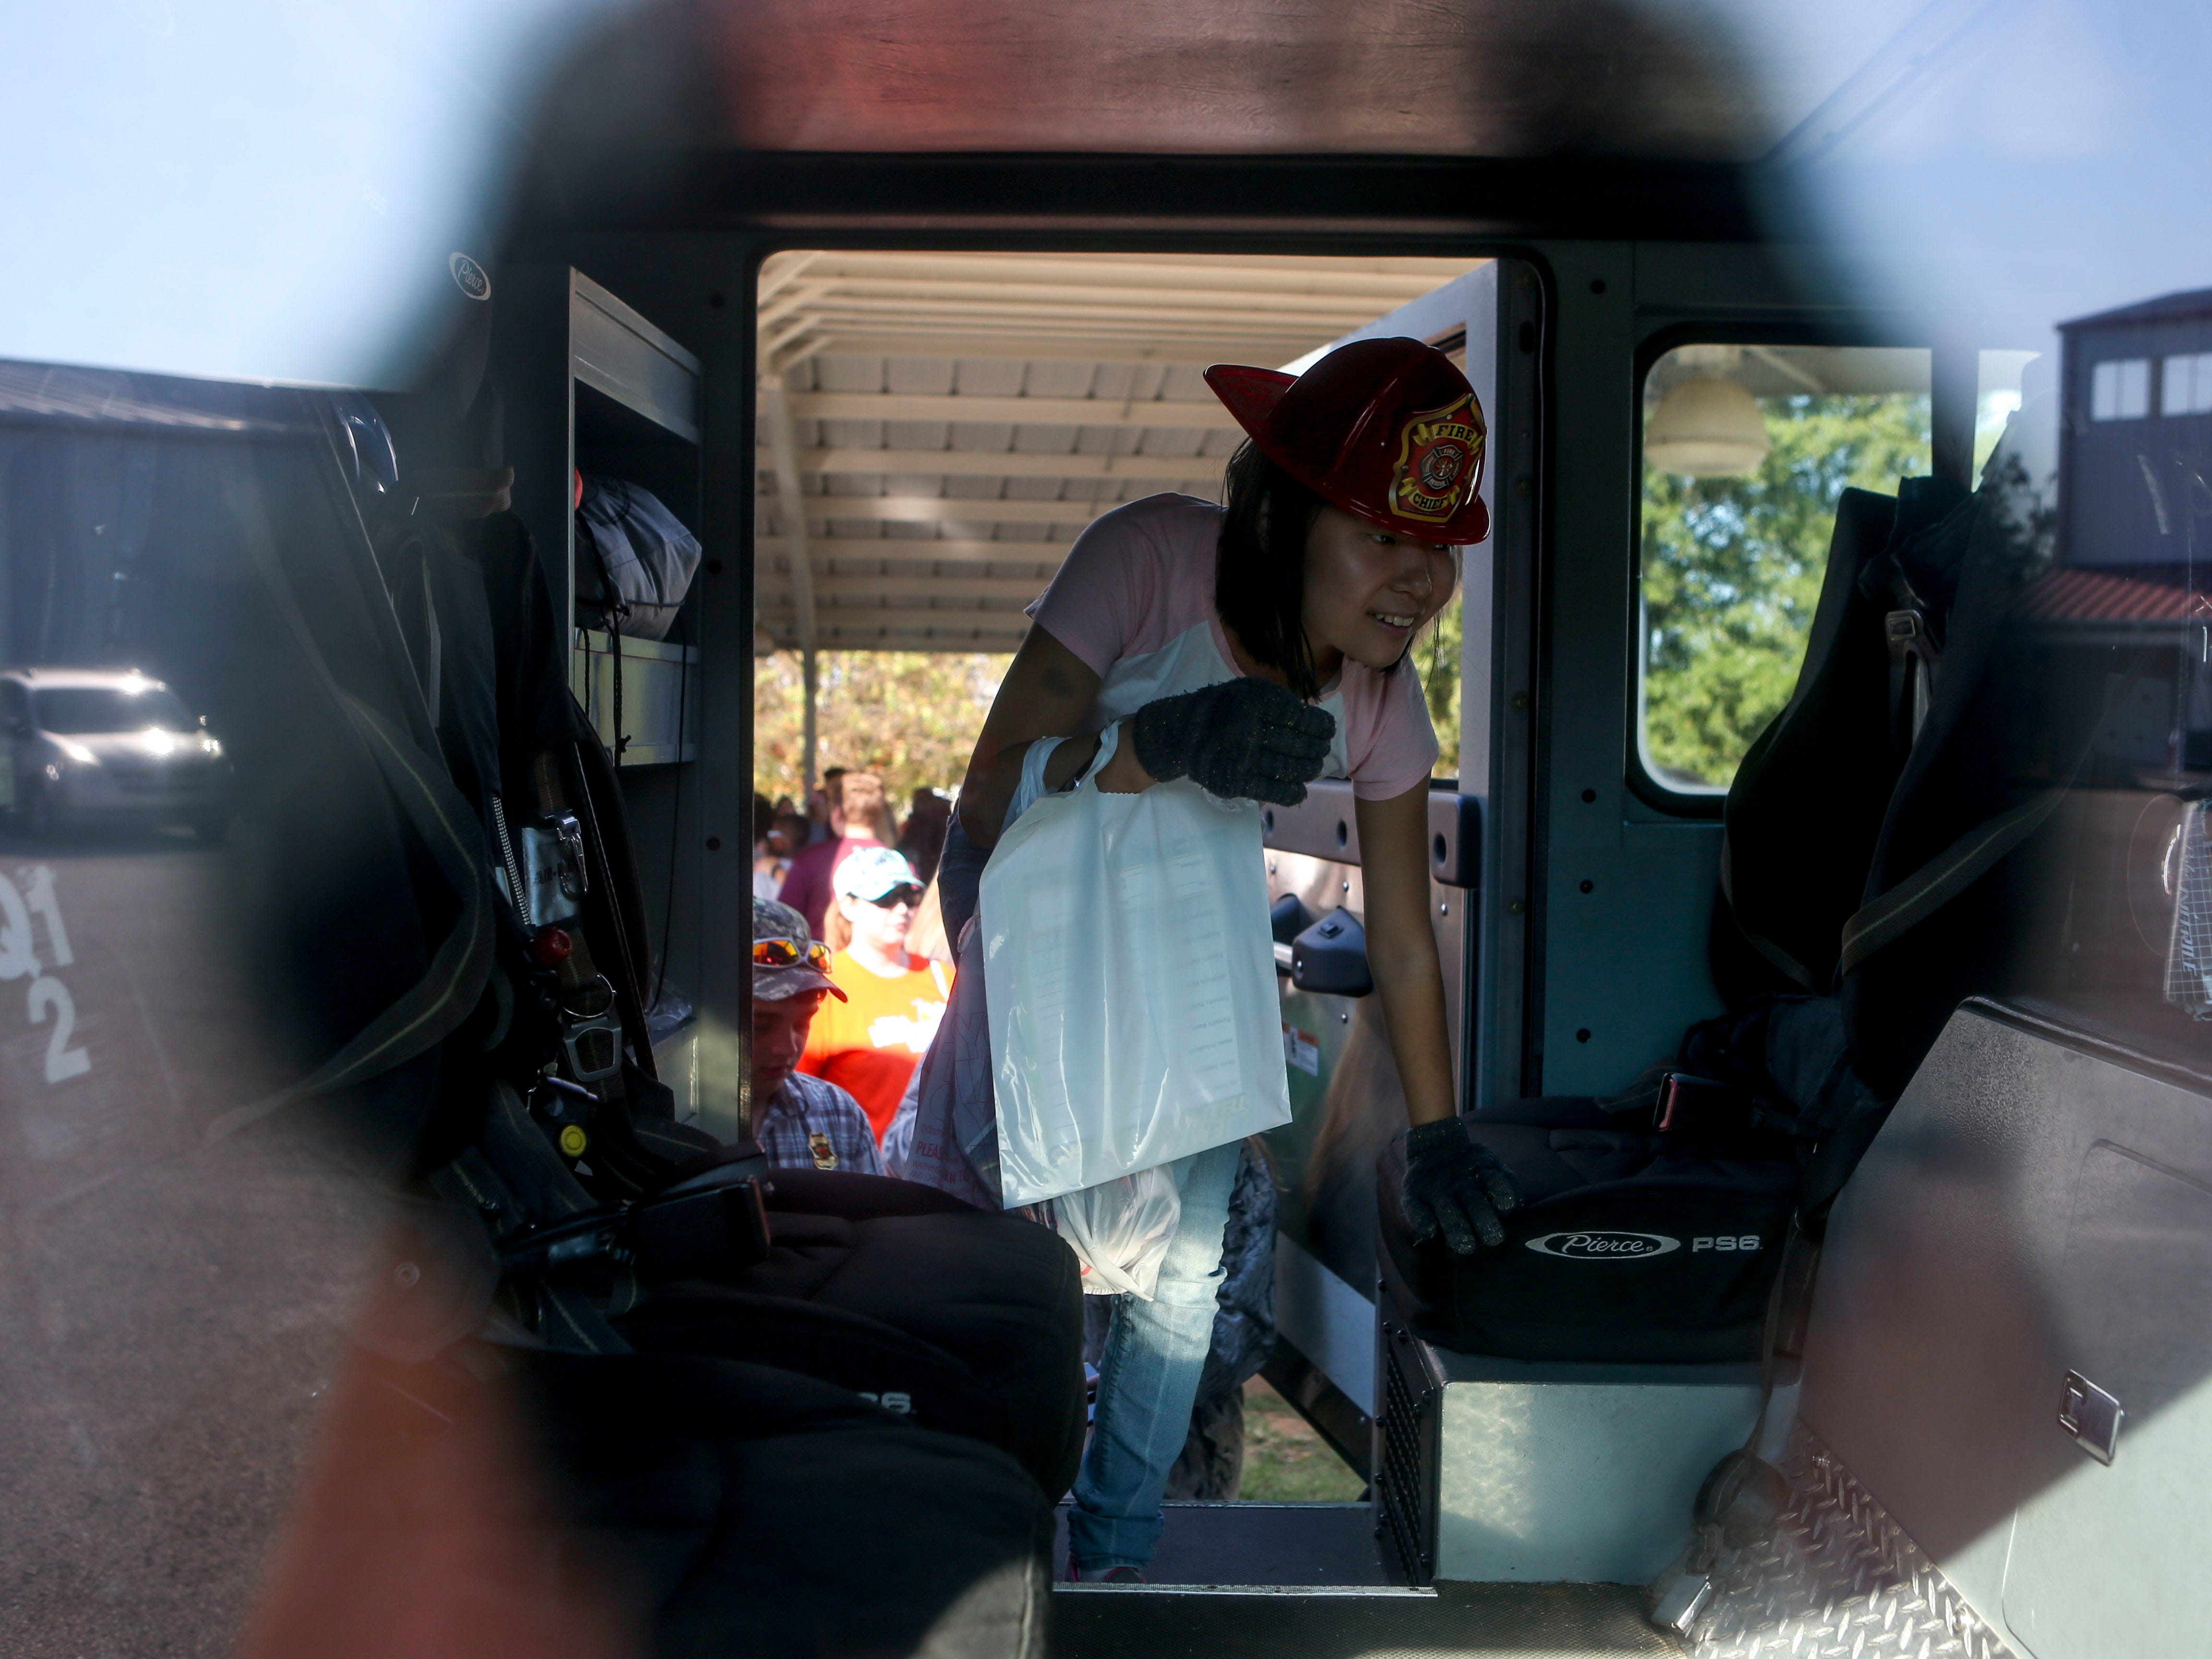 An attendee climbs into a firetruck that was brought out at the Day of Champions celebration held at Jackson Fairgrounds Park in Jackson, Tenn., on Wednesday, Sept. 19, 2018.